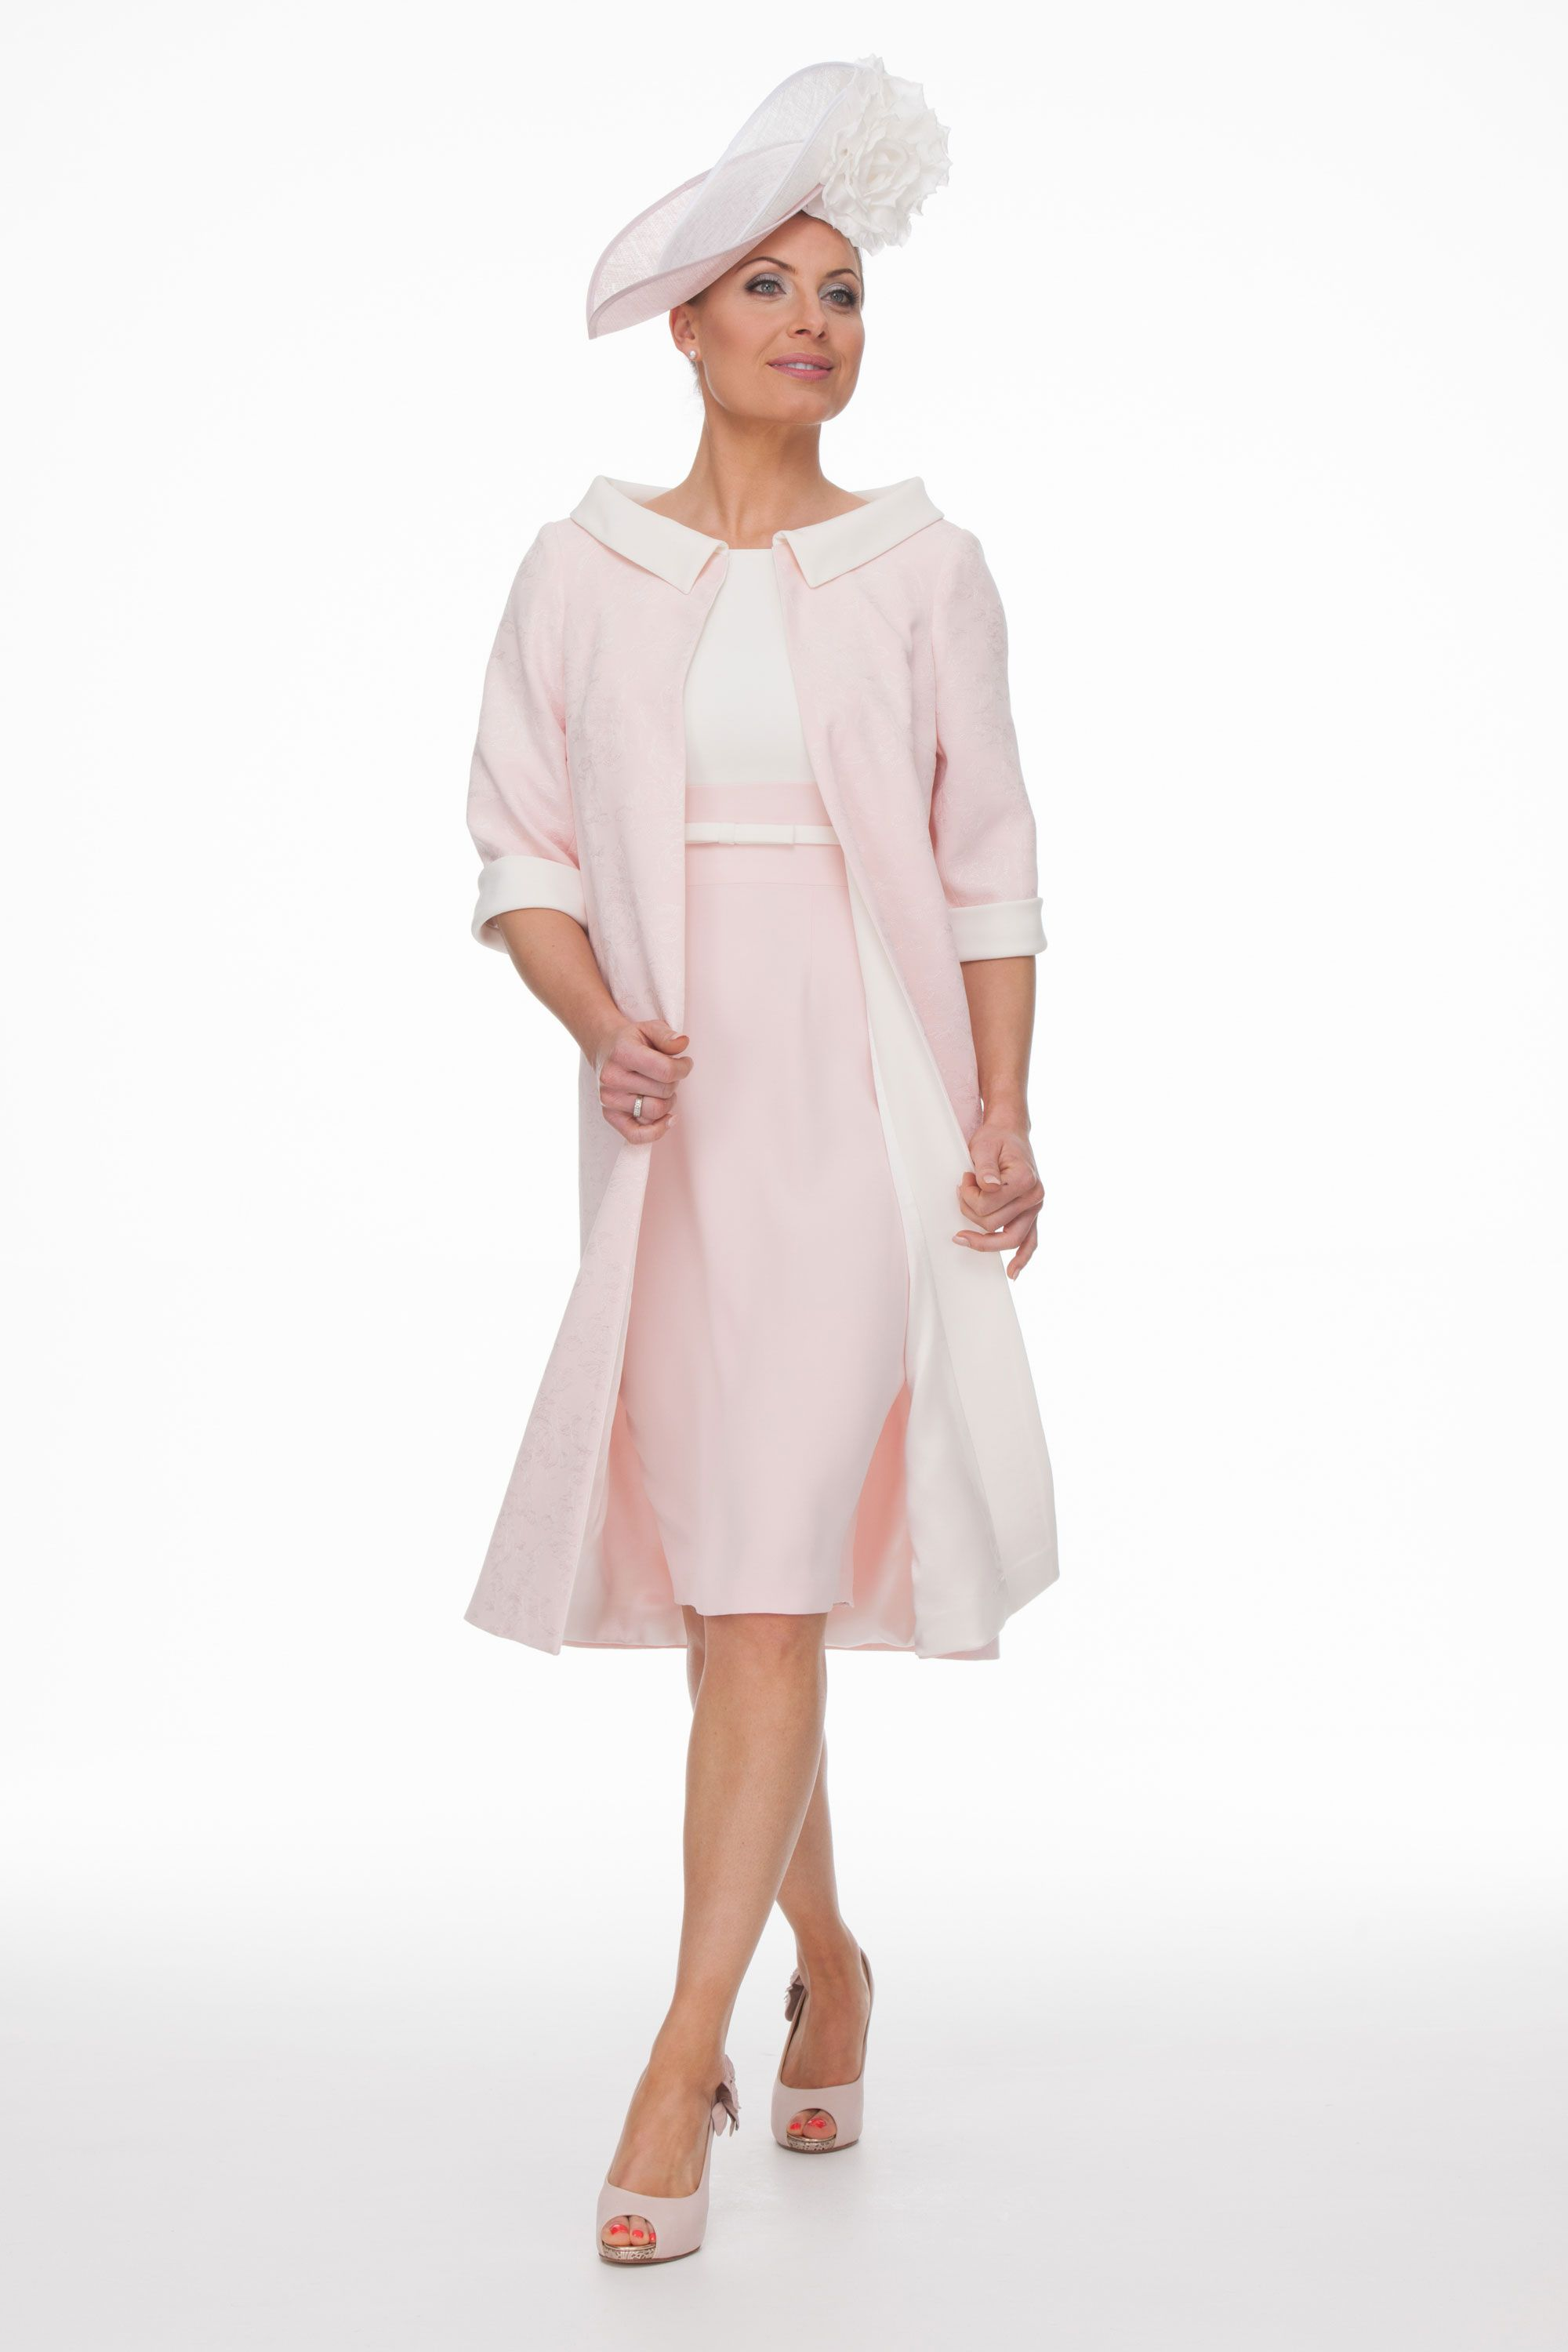 Mother Of The Bride London Joyce Young Collections Sixties Fashion Fashion Dresses Young Mother Of The Bride